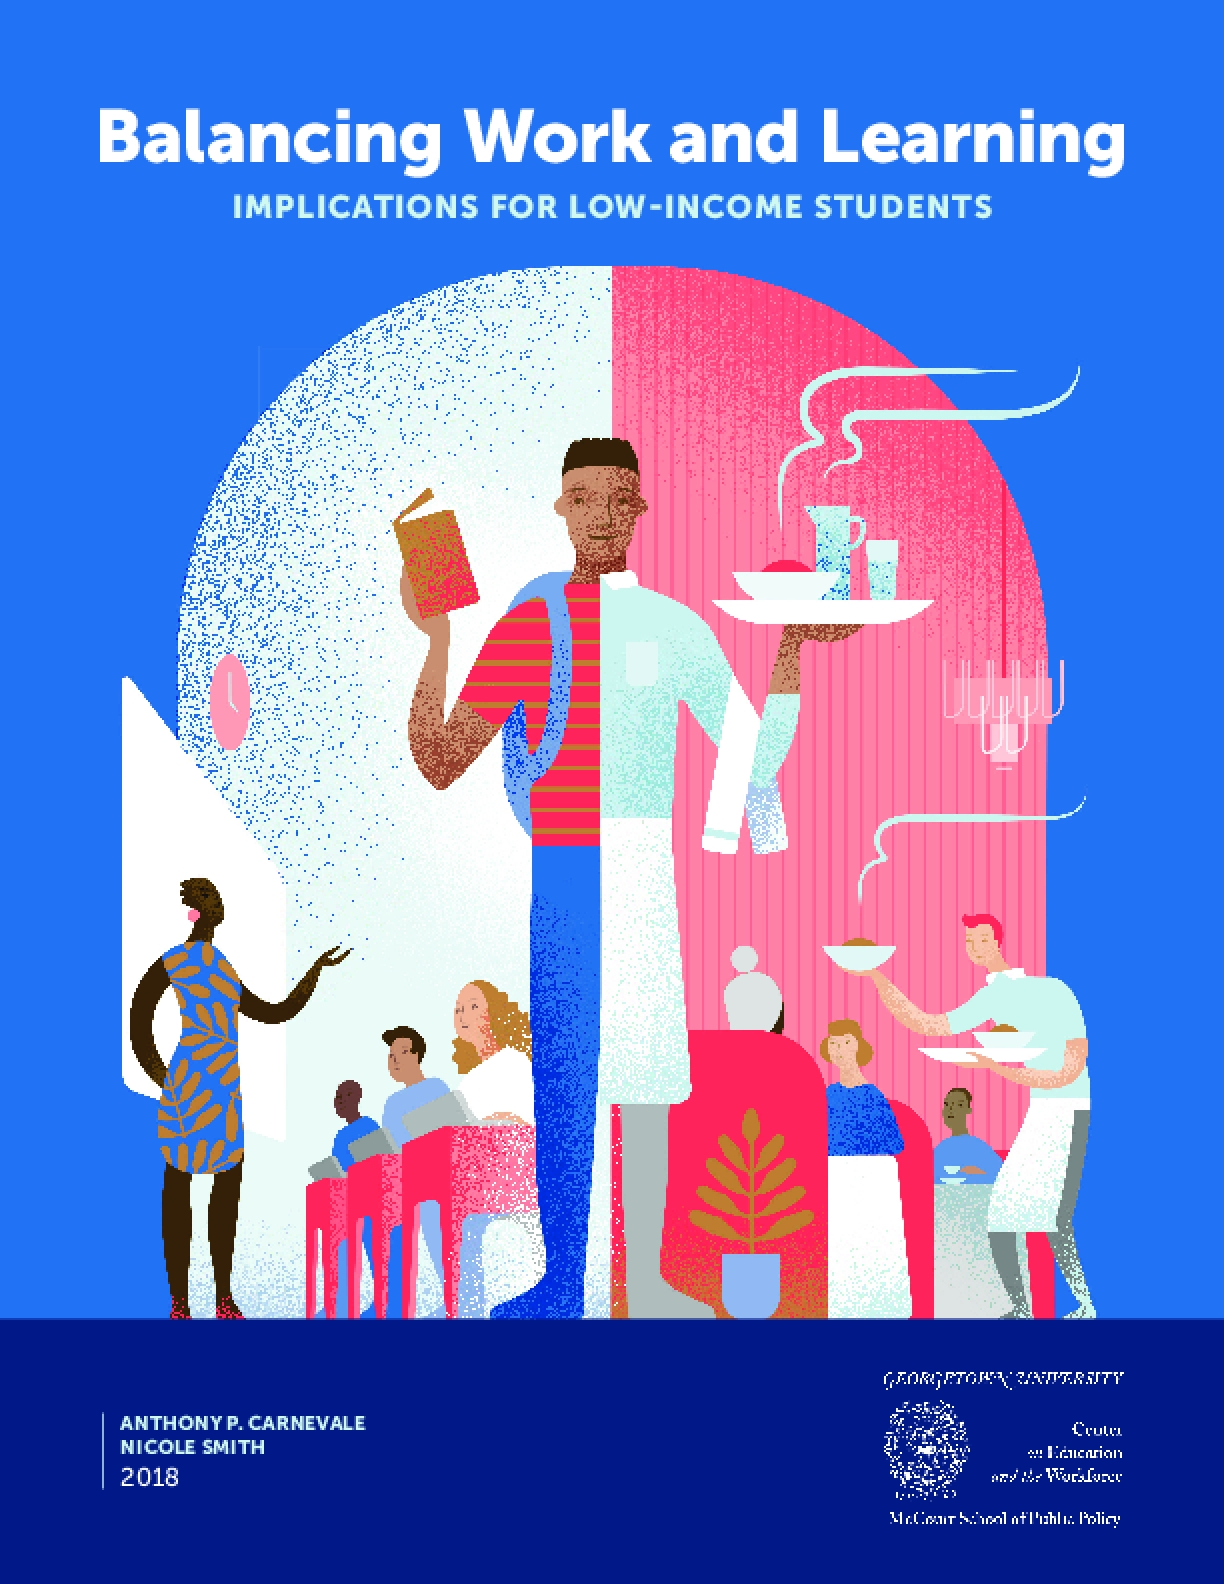 Balancing Work and Learning: Implications for Low-Income Students